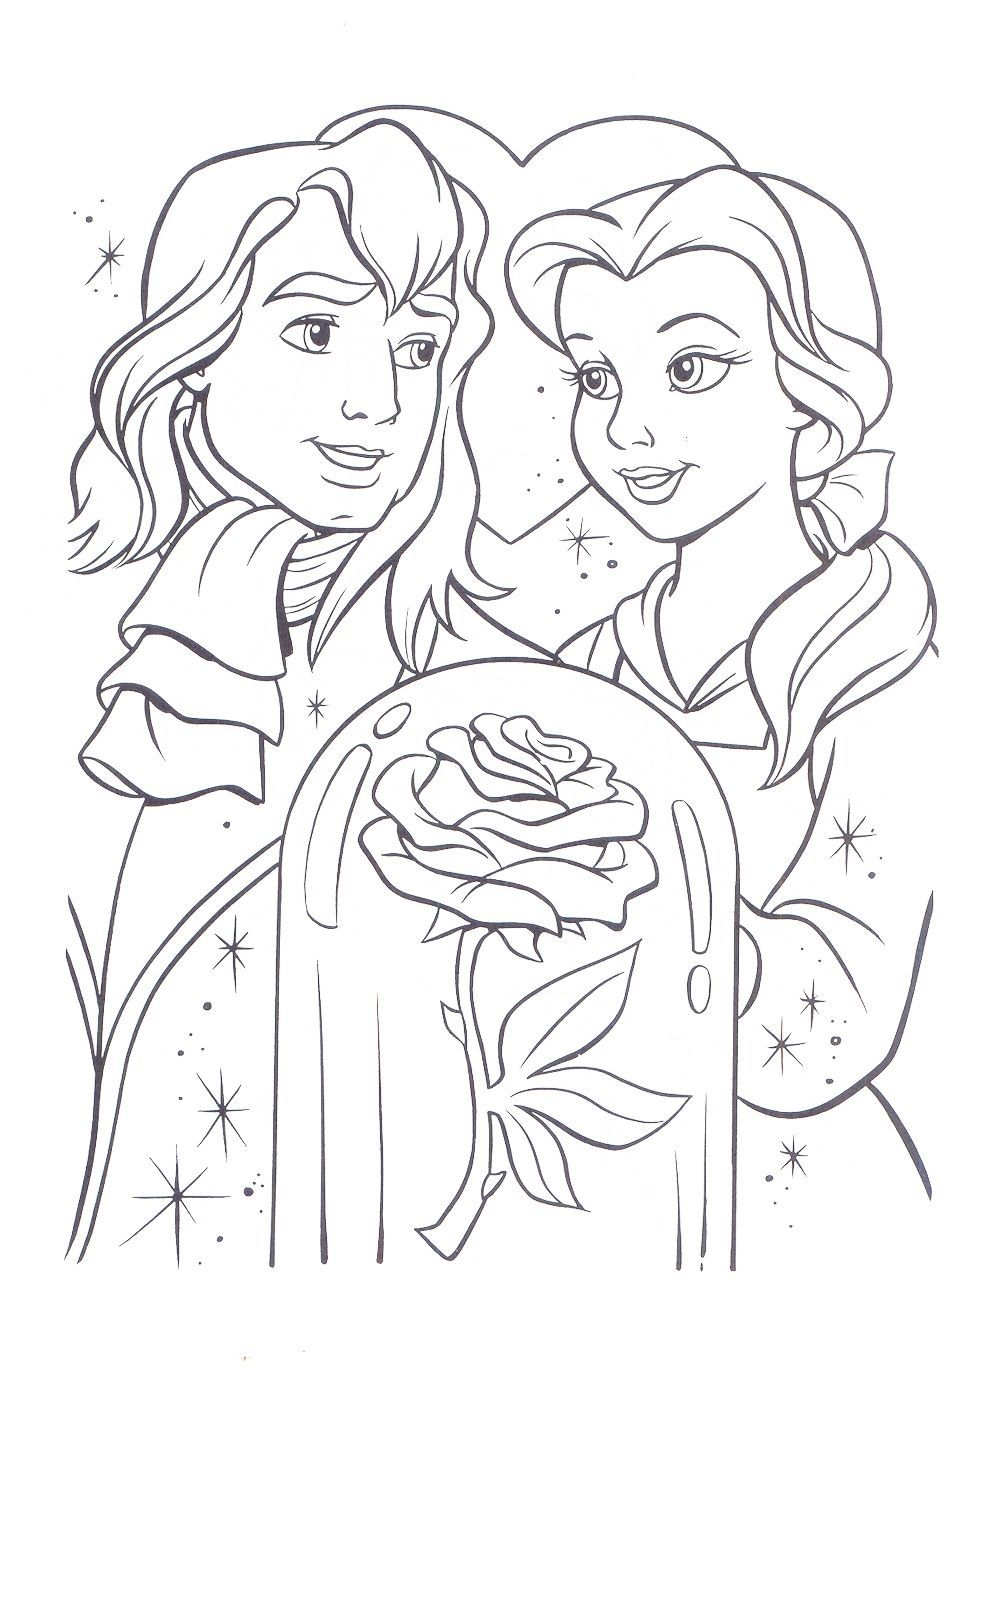 Beauty And The Beast Coloring Page Disney Princess Coloring Pages Rose Coloring Pages Disney Coloring Pages